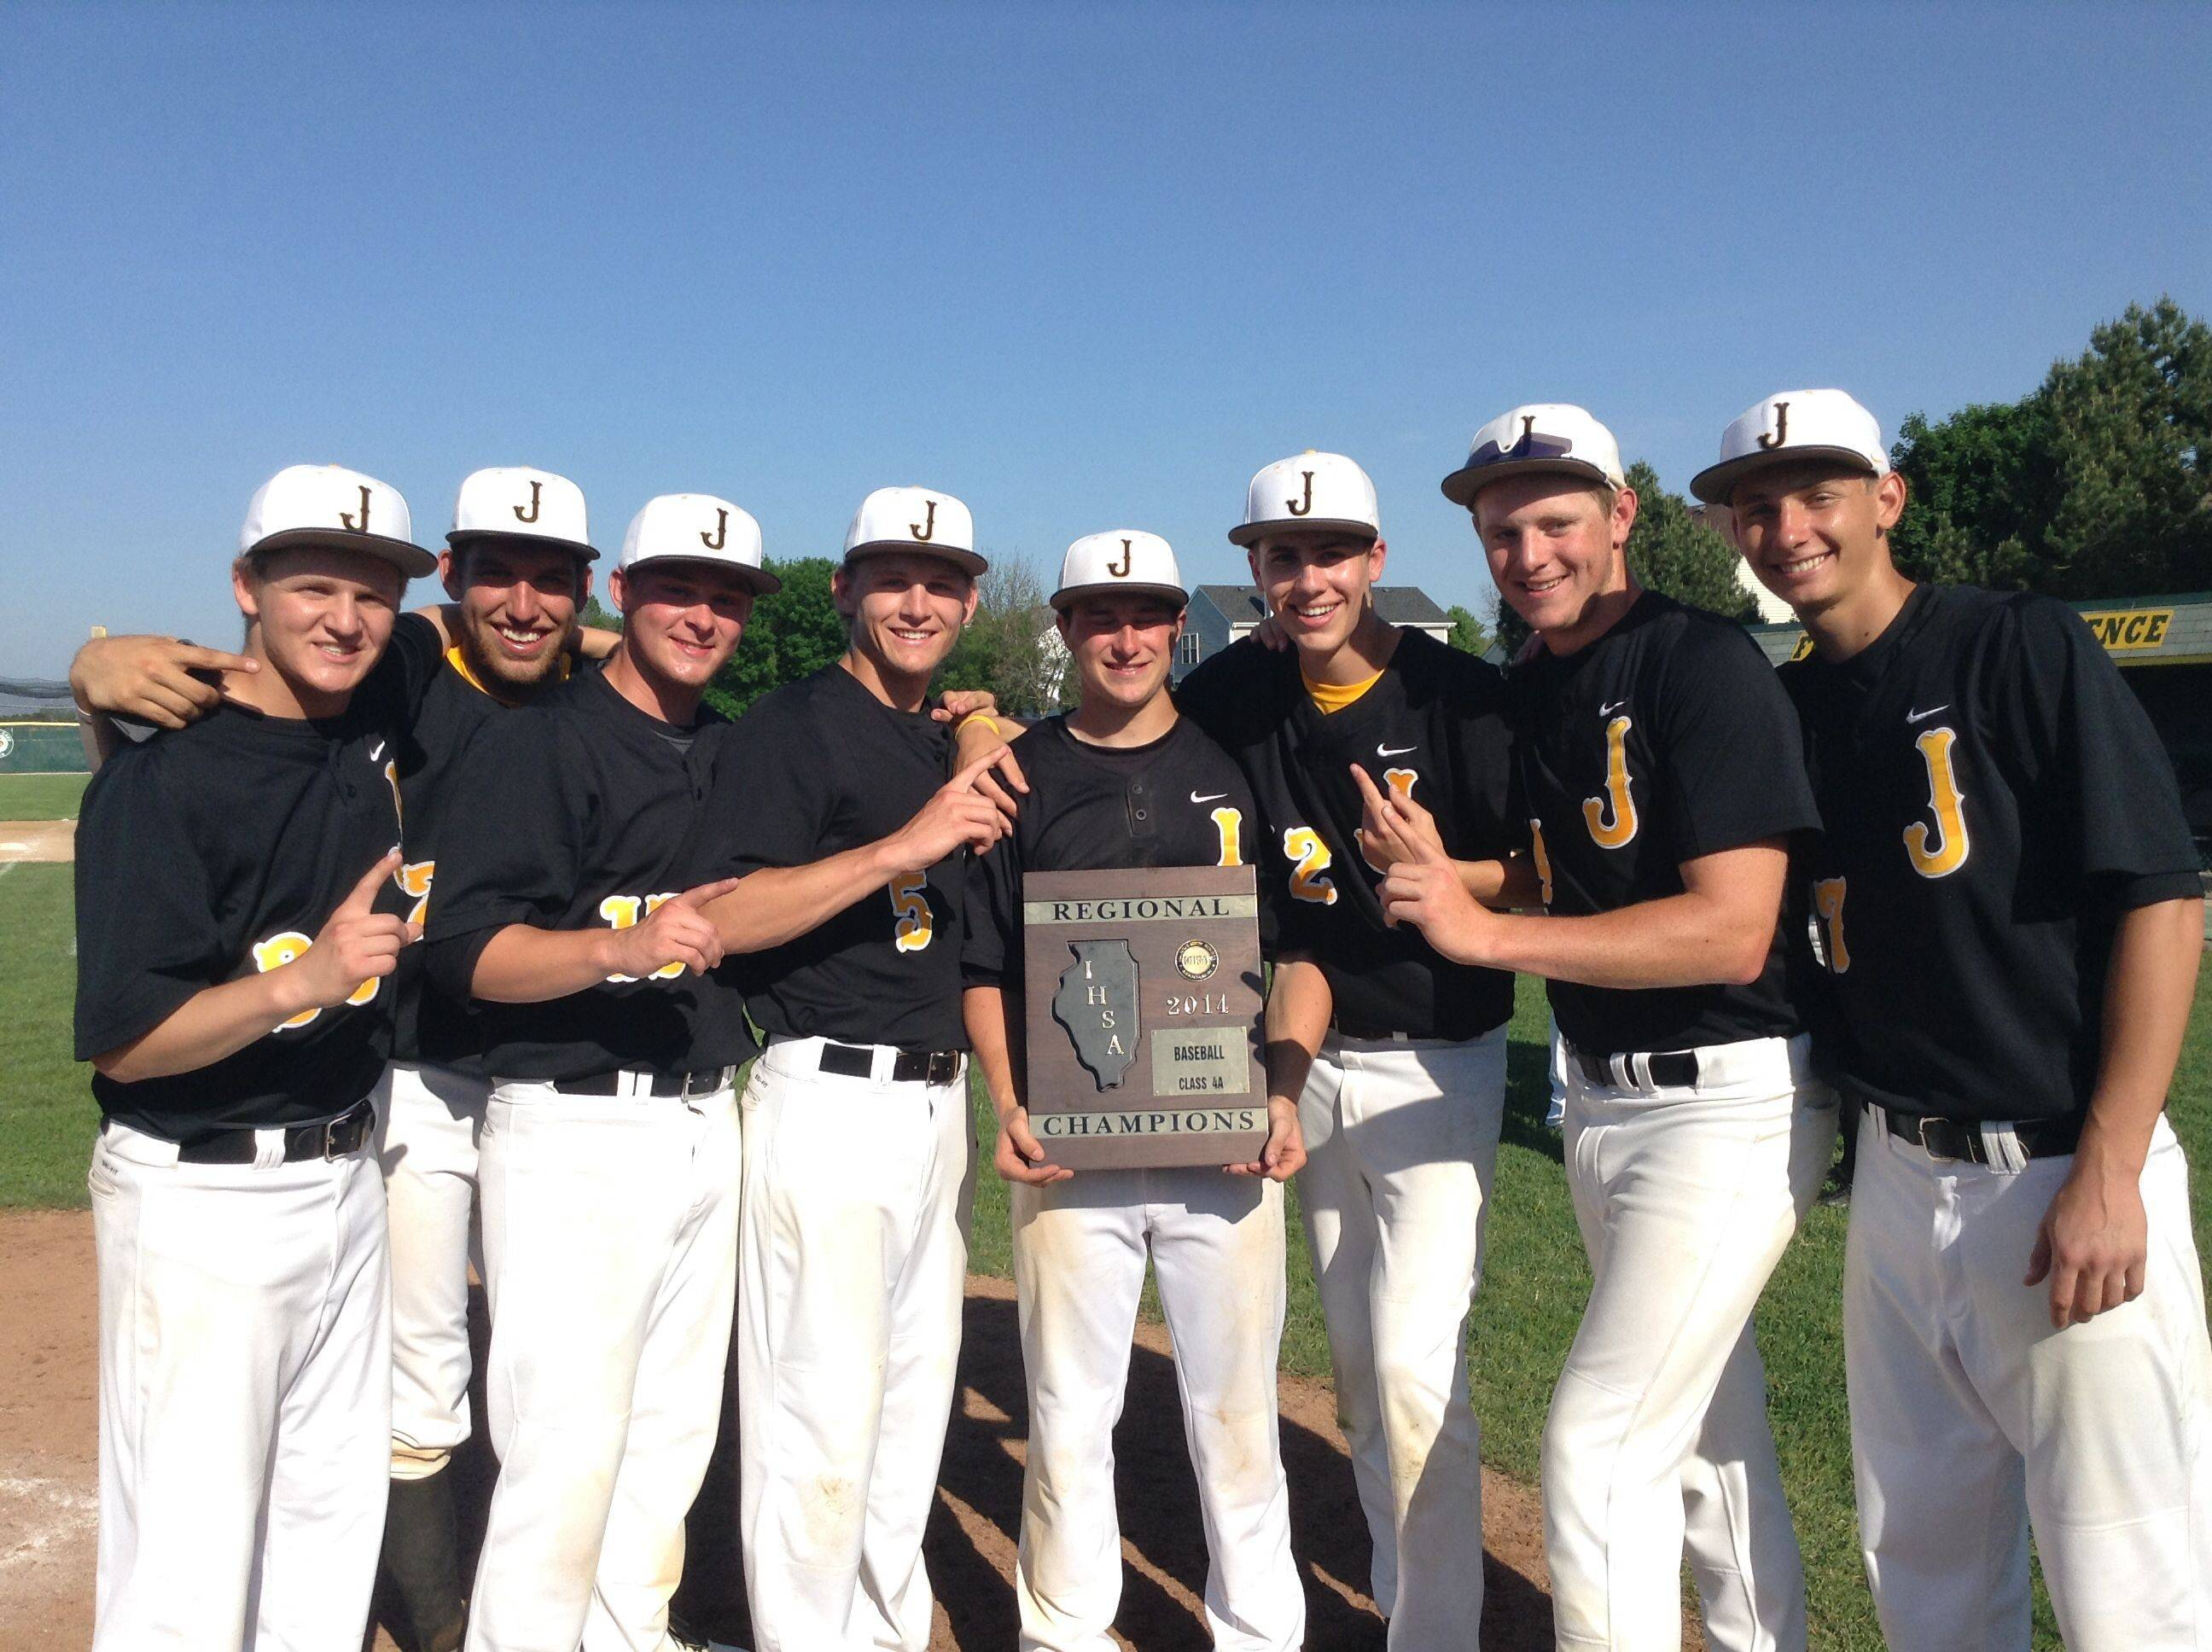 The Jacobs baseball team displays the Class 4A regional championship plaque it won at Crystal Lake South on Saturday.